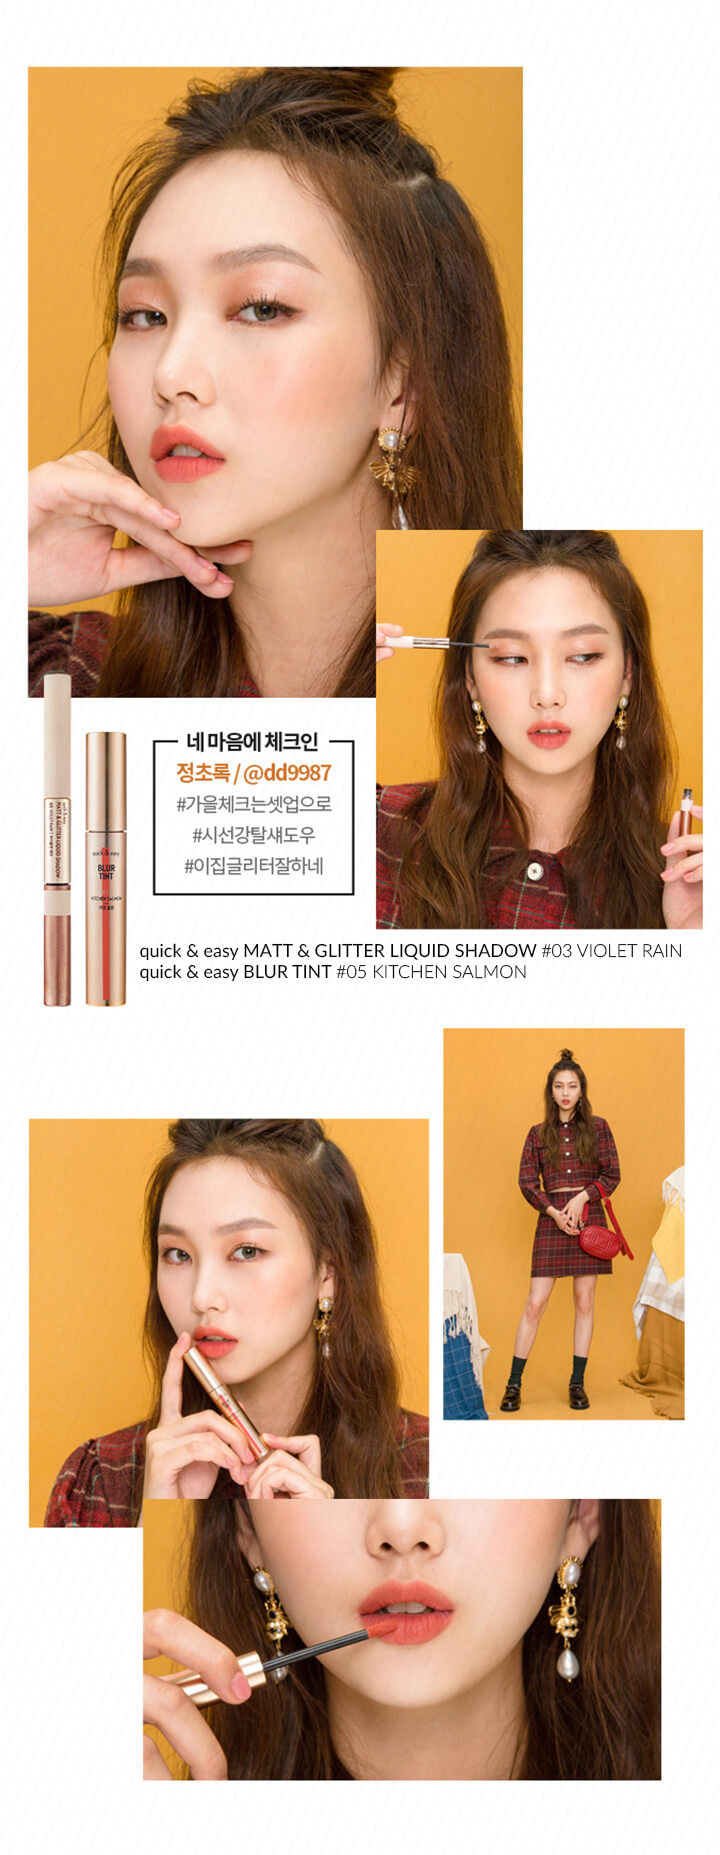 Etude House Quick And Easy Blur Tint - Bici Cosmetics